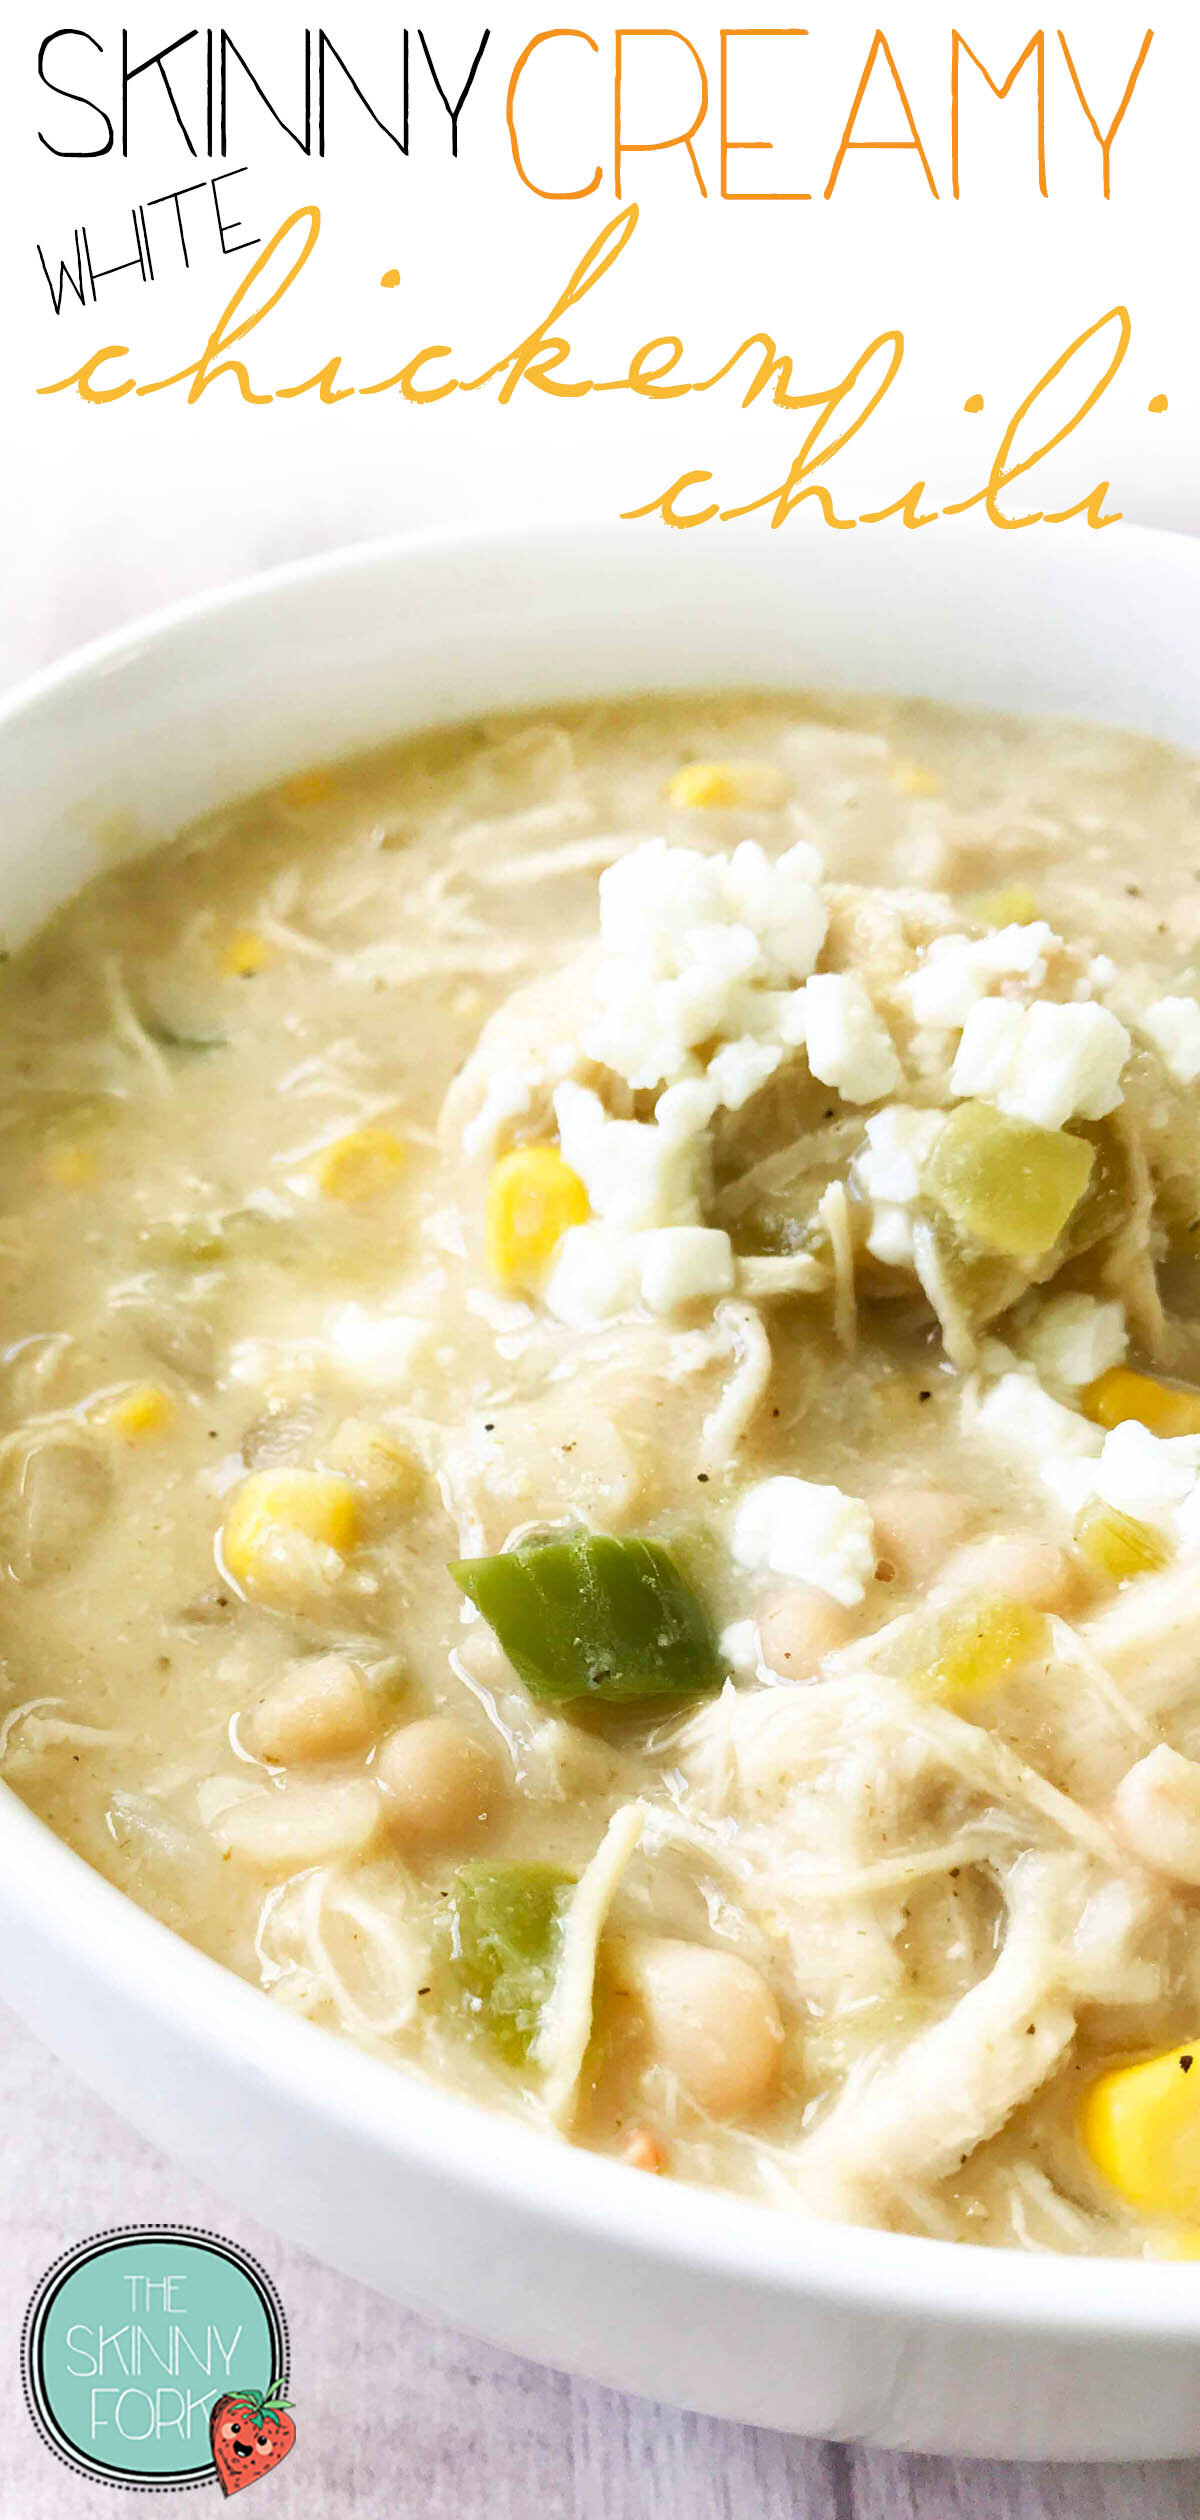 Skinny Creamy White Chicken Chili